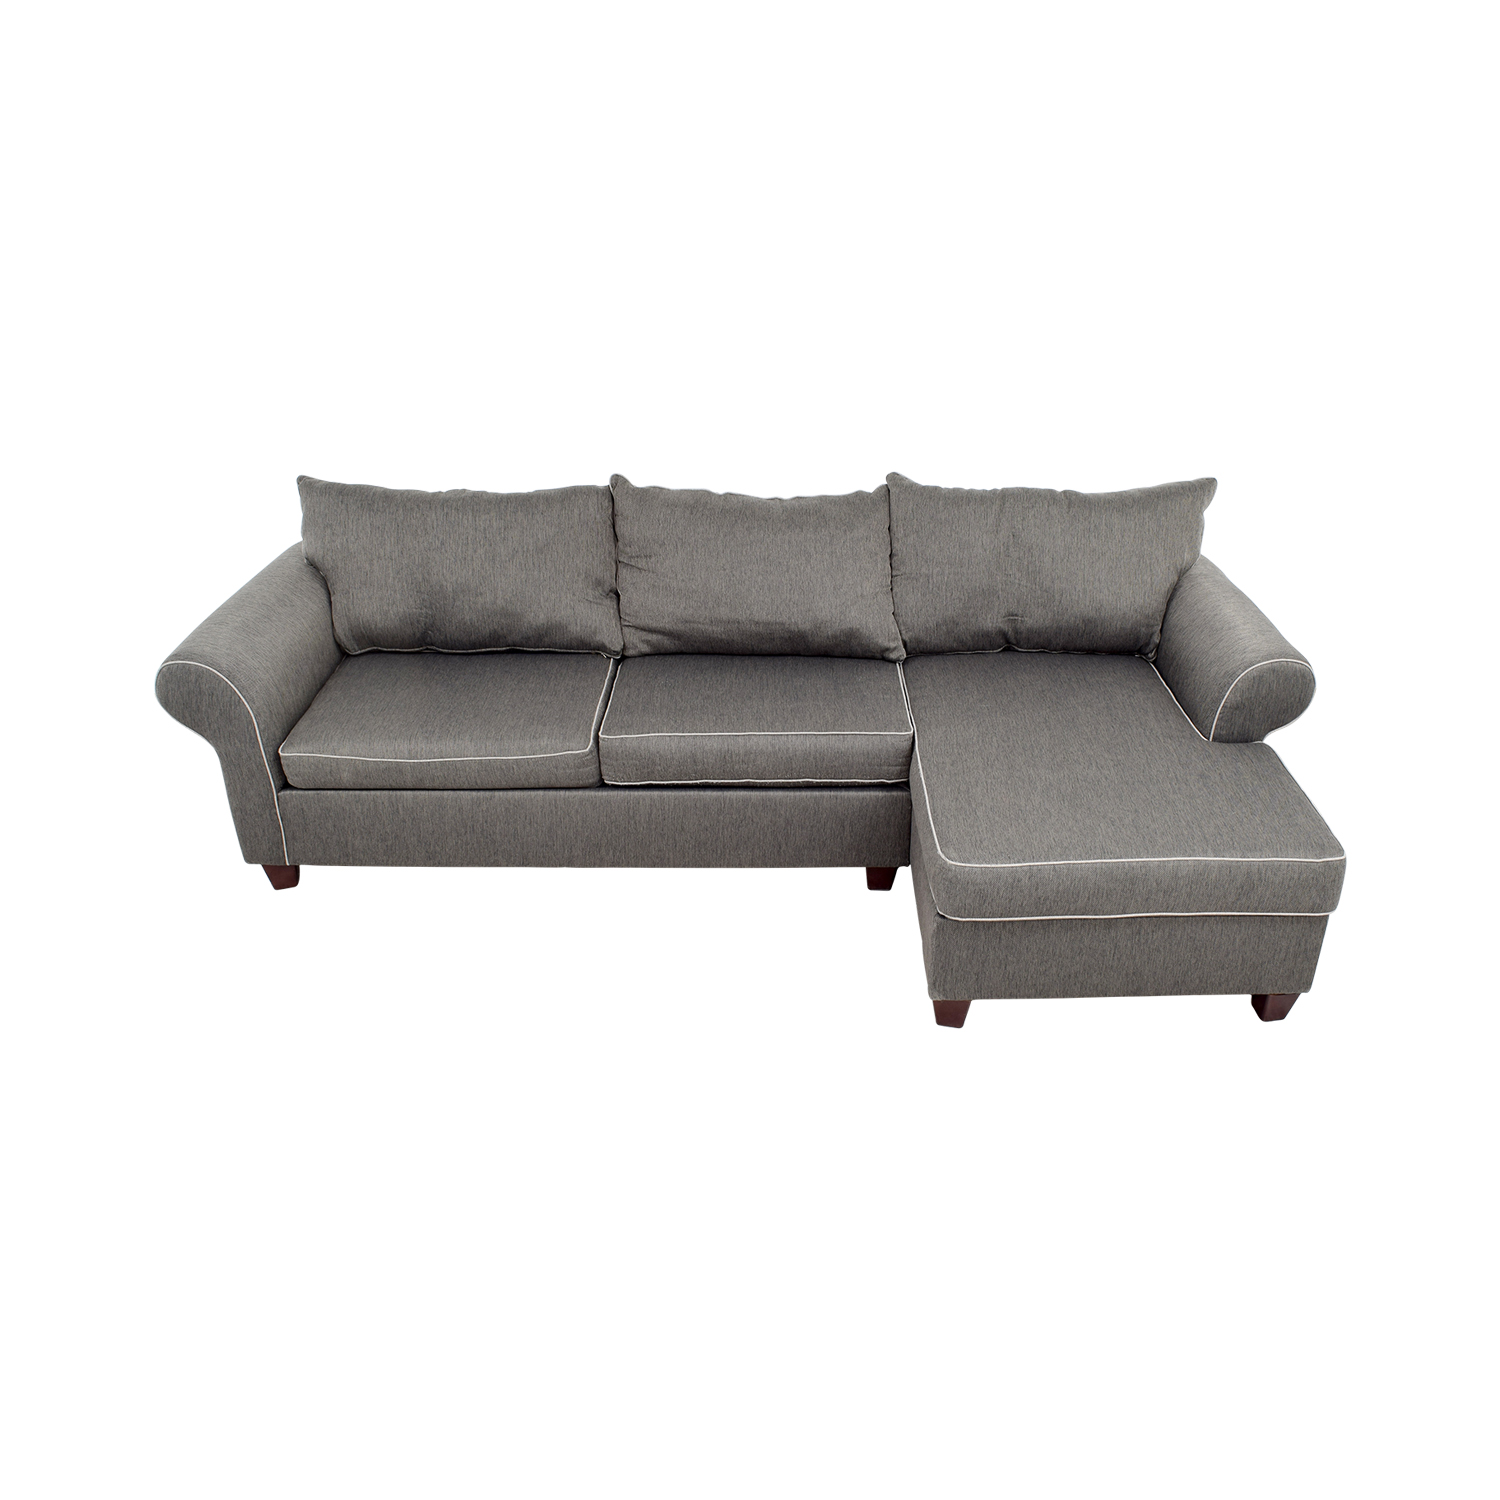 Bobs Furniture Bobs Furniture Grey Chaise Sectional coupon